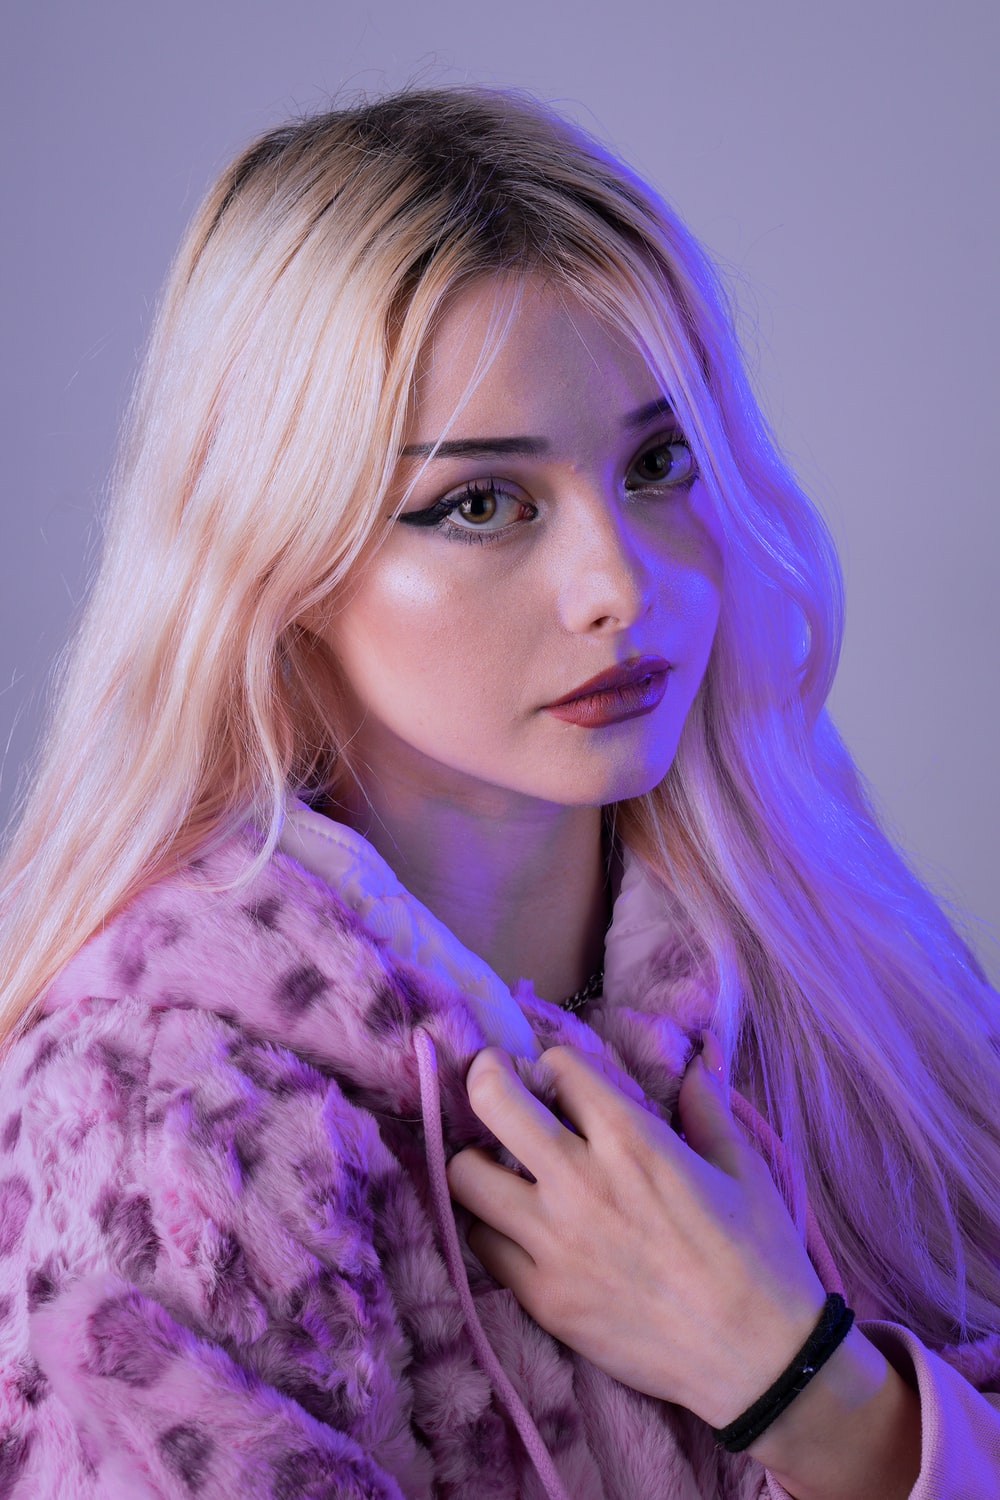 woman with purple hair wearing purple and white fur coat